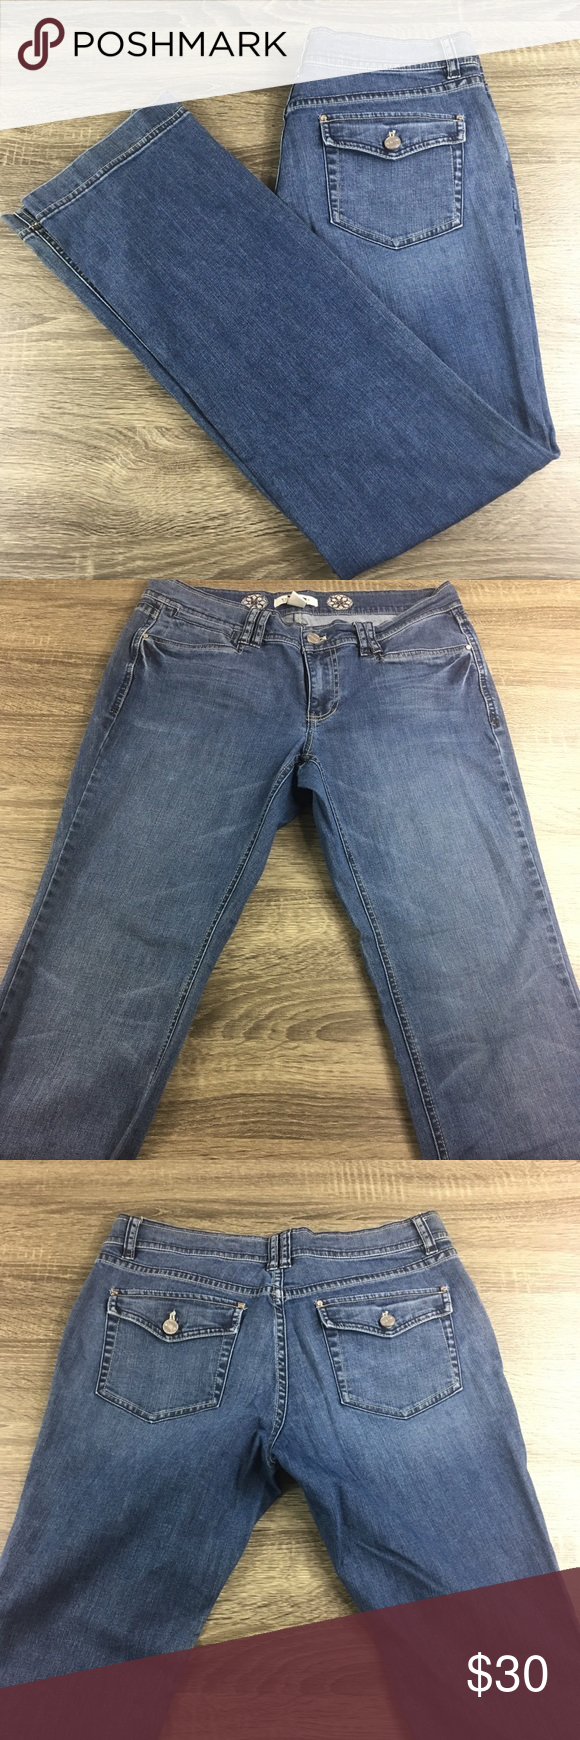 6f42ed8ca8 White House Black Market Jeans Size 8R WHBM Noir Style. Straight leg 8R.  GUC Waist 16 Hips 19 Length 40 1/2 Inseam 31 1/2 Rise 8 Leg opening 16 in  ...